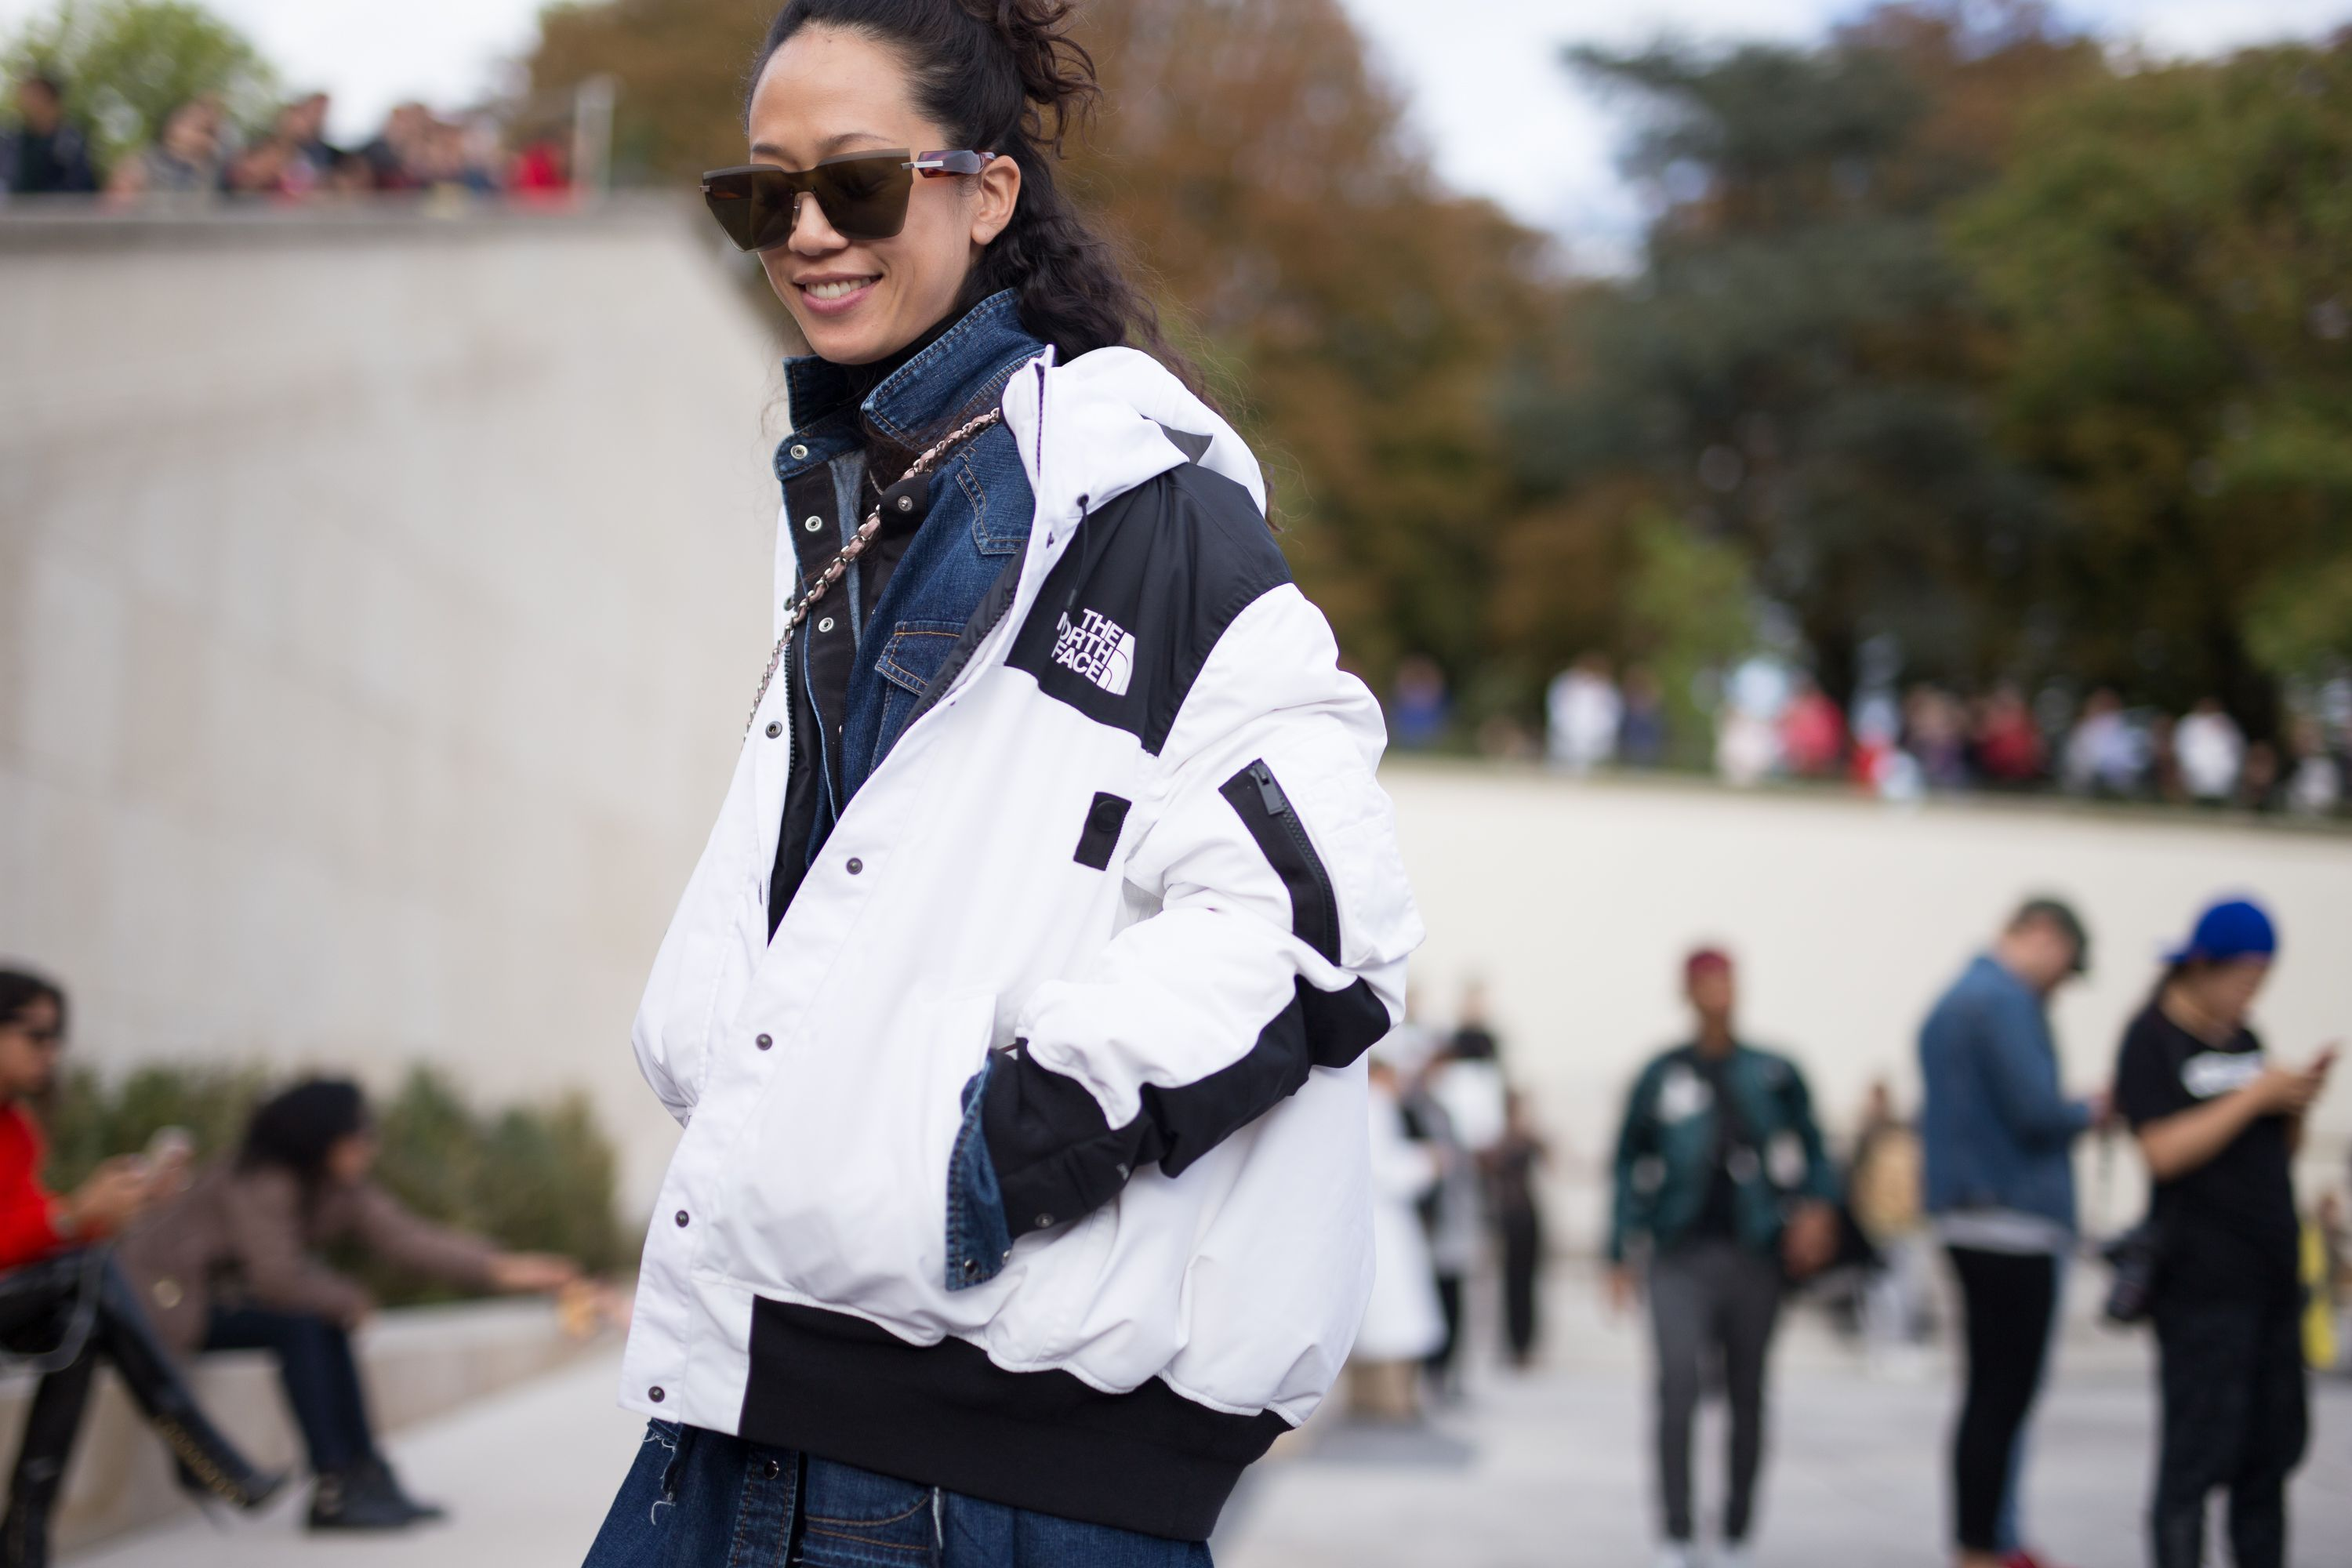 paris, france   october 02  a guest is seen attending hermes during paris fashion week wearing the north face on october 2, 2017 in paris, france  photo by matthew sperzelgetty images